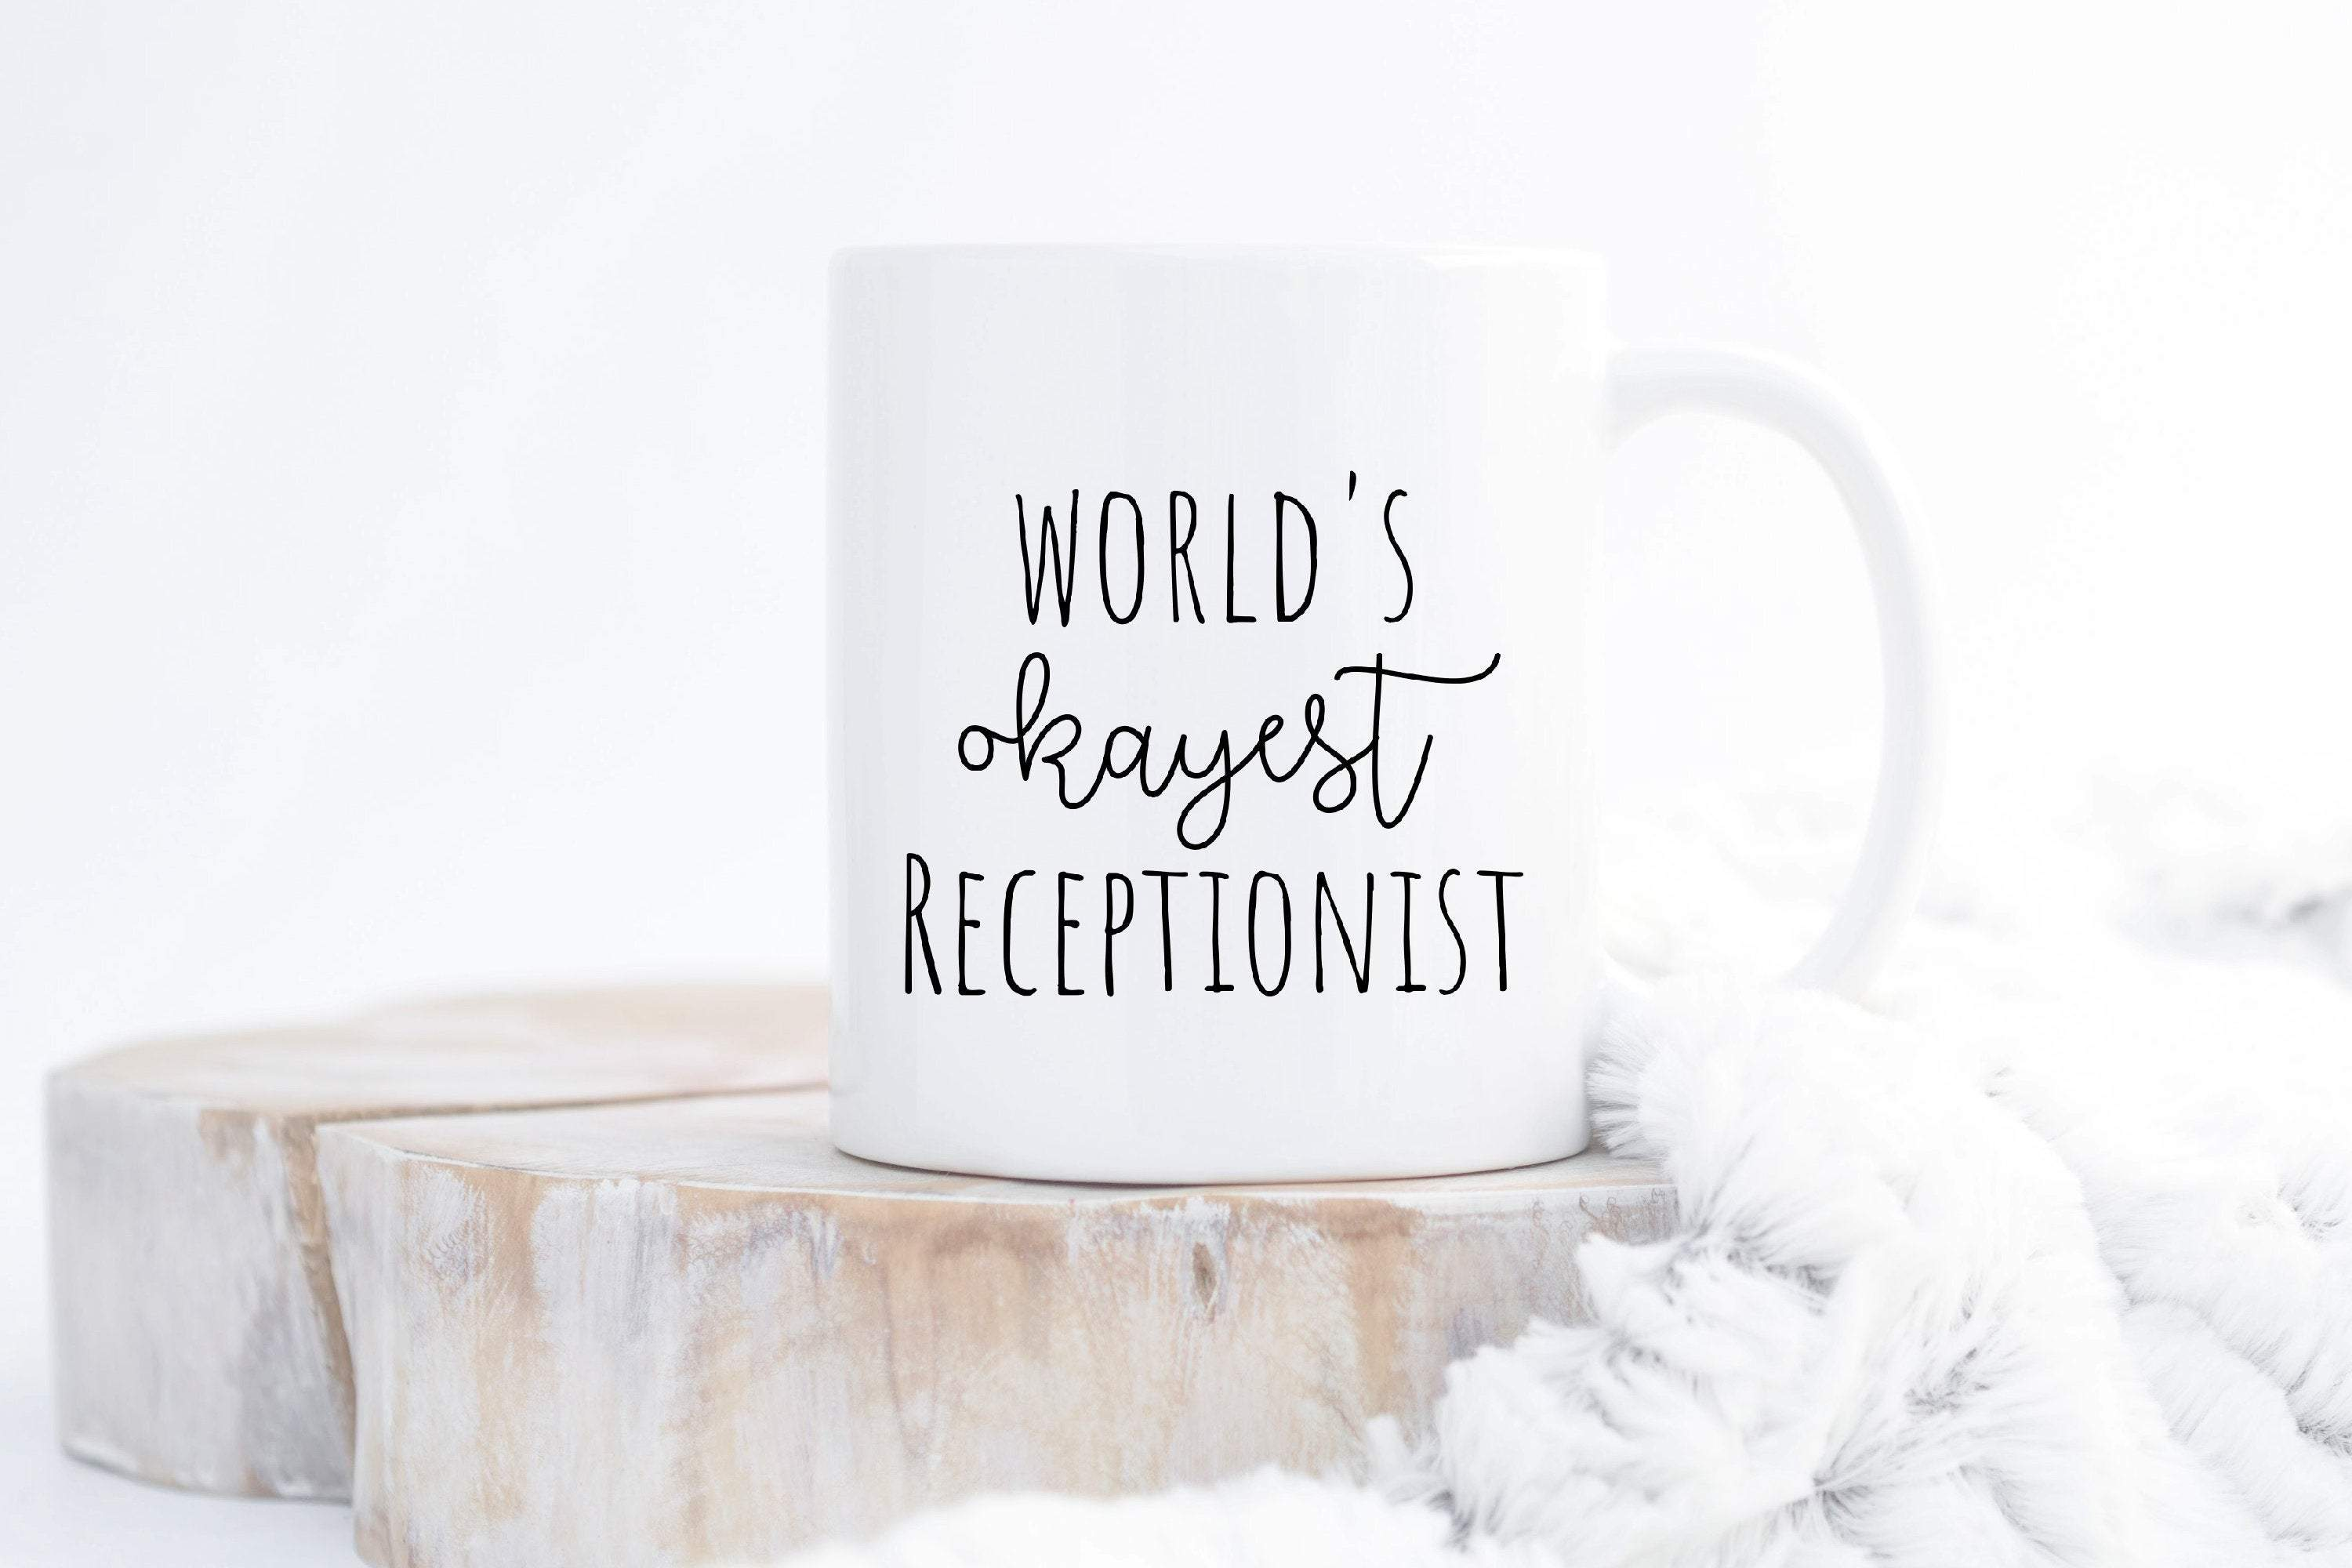 World's Okayest Receptionist gifts